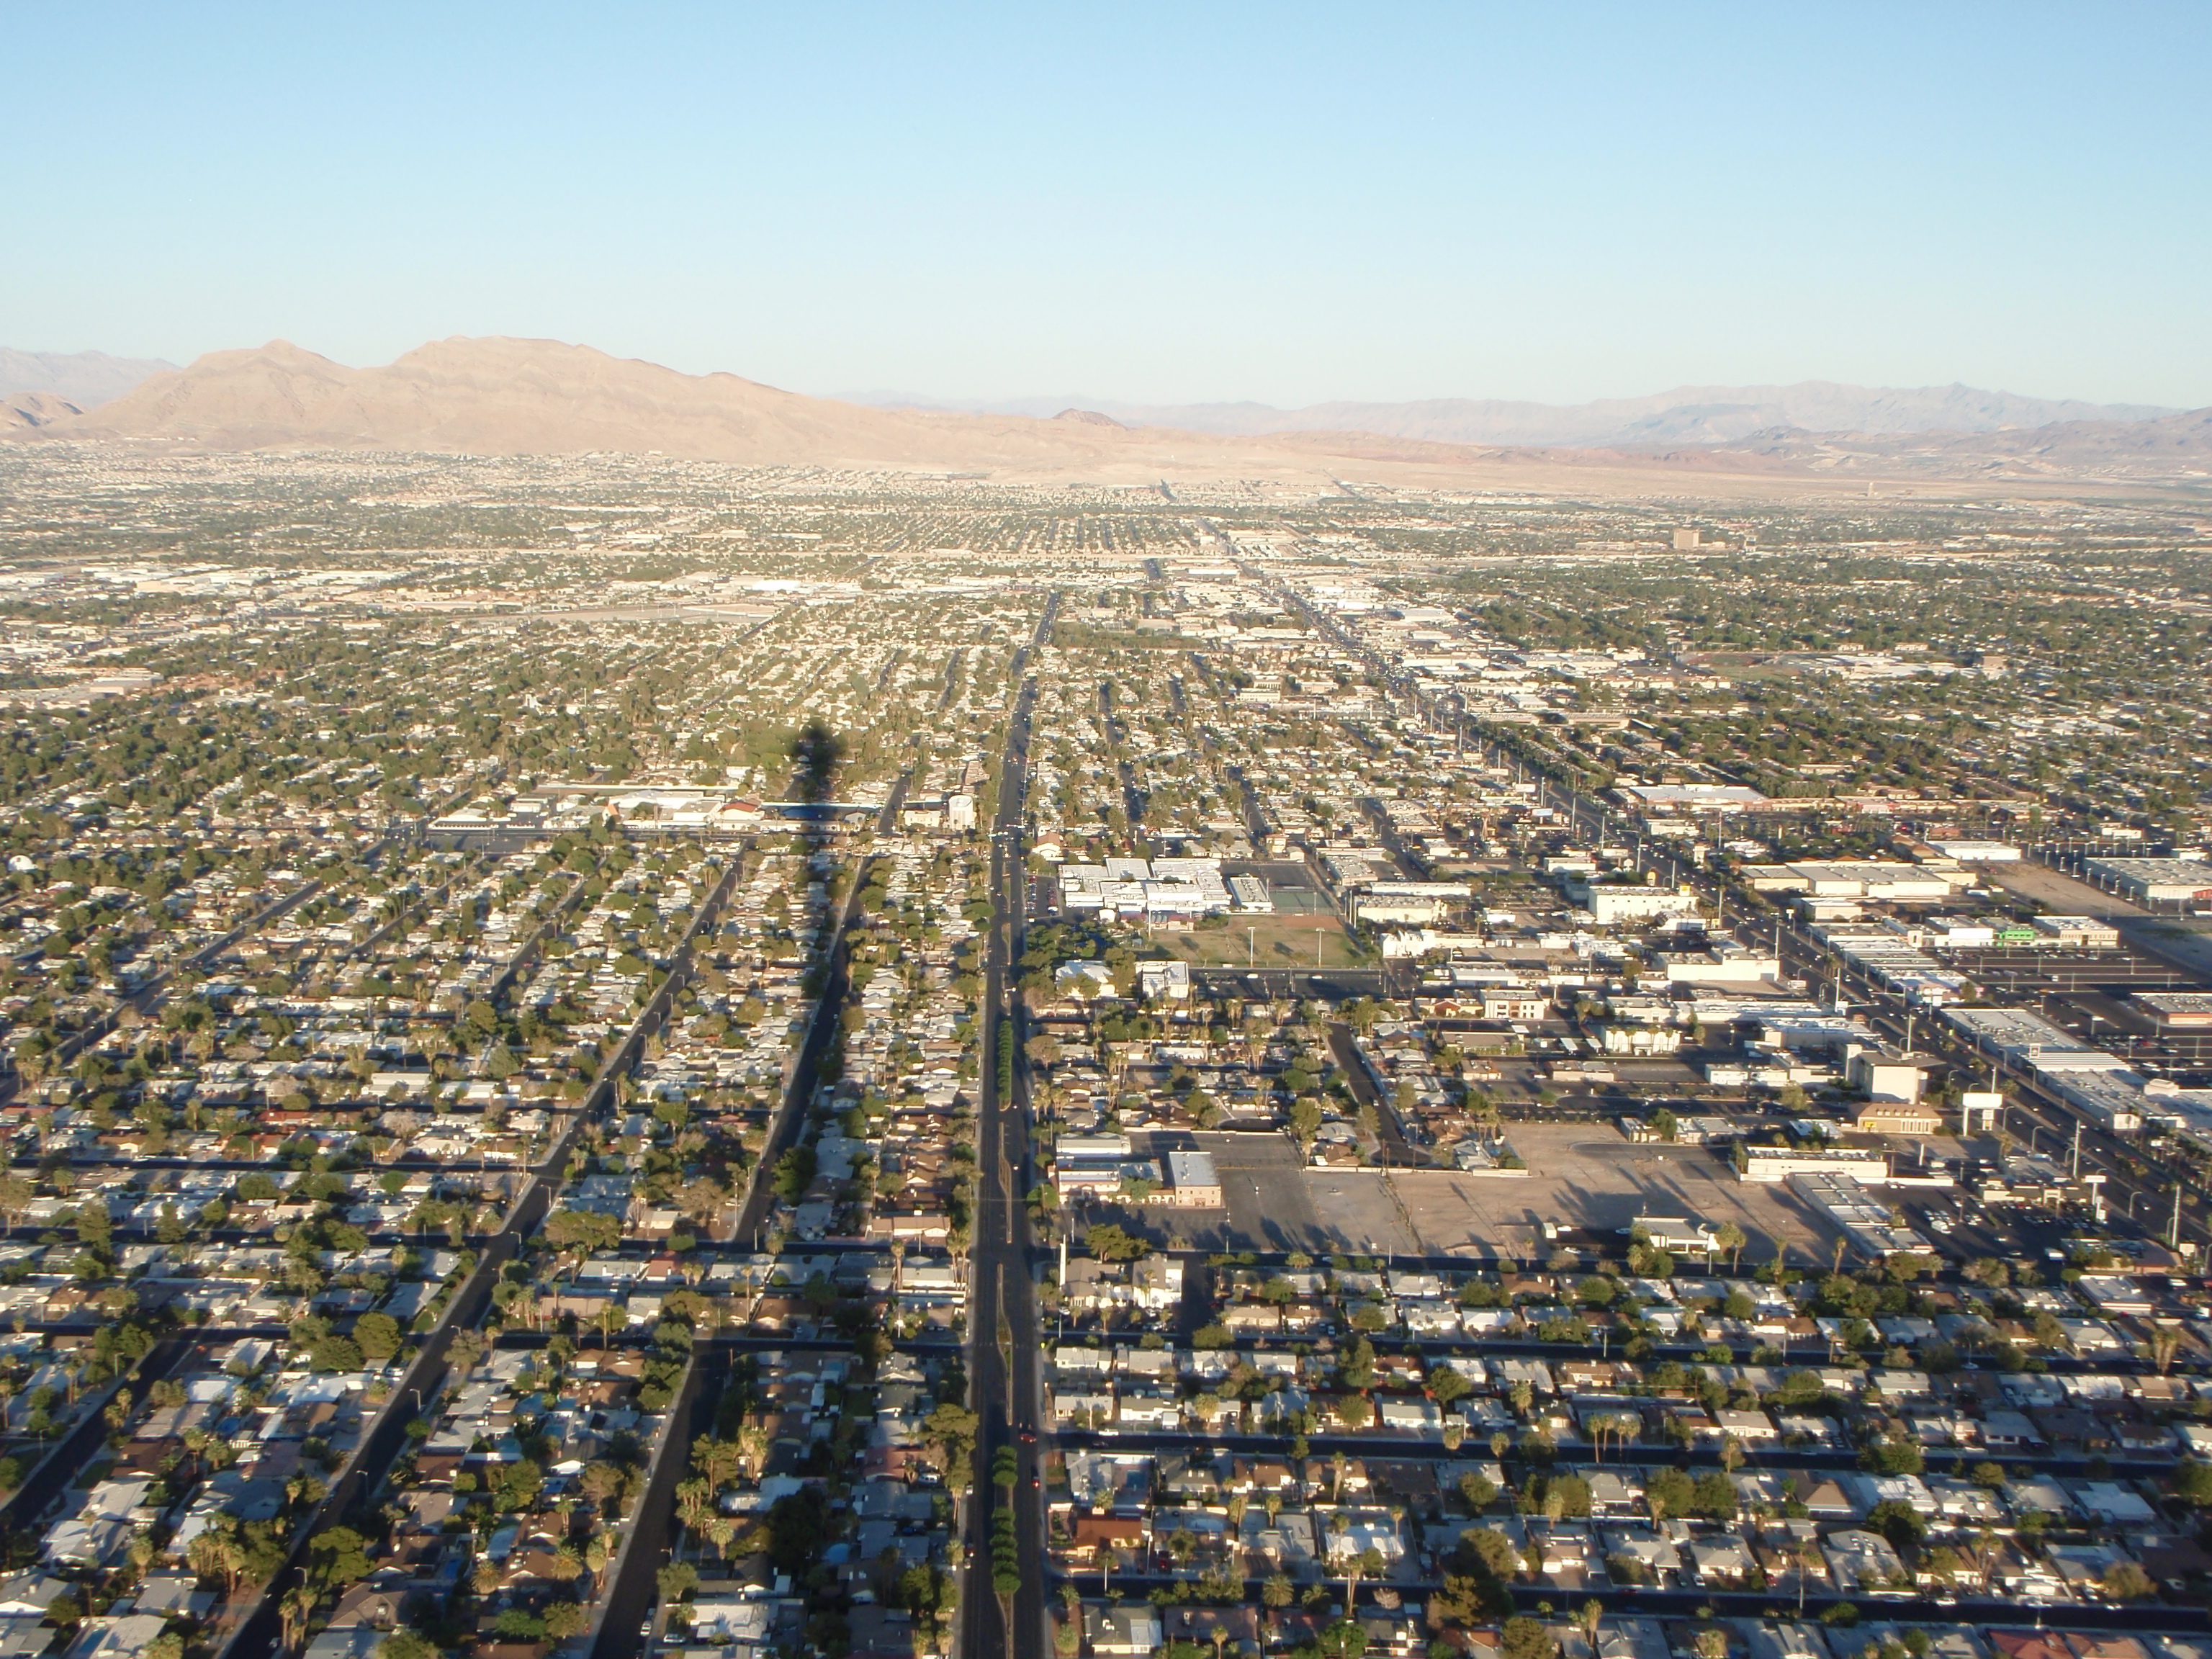 Las vegas from above photo